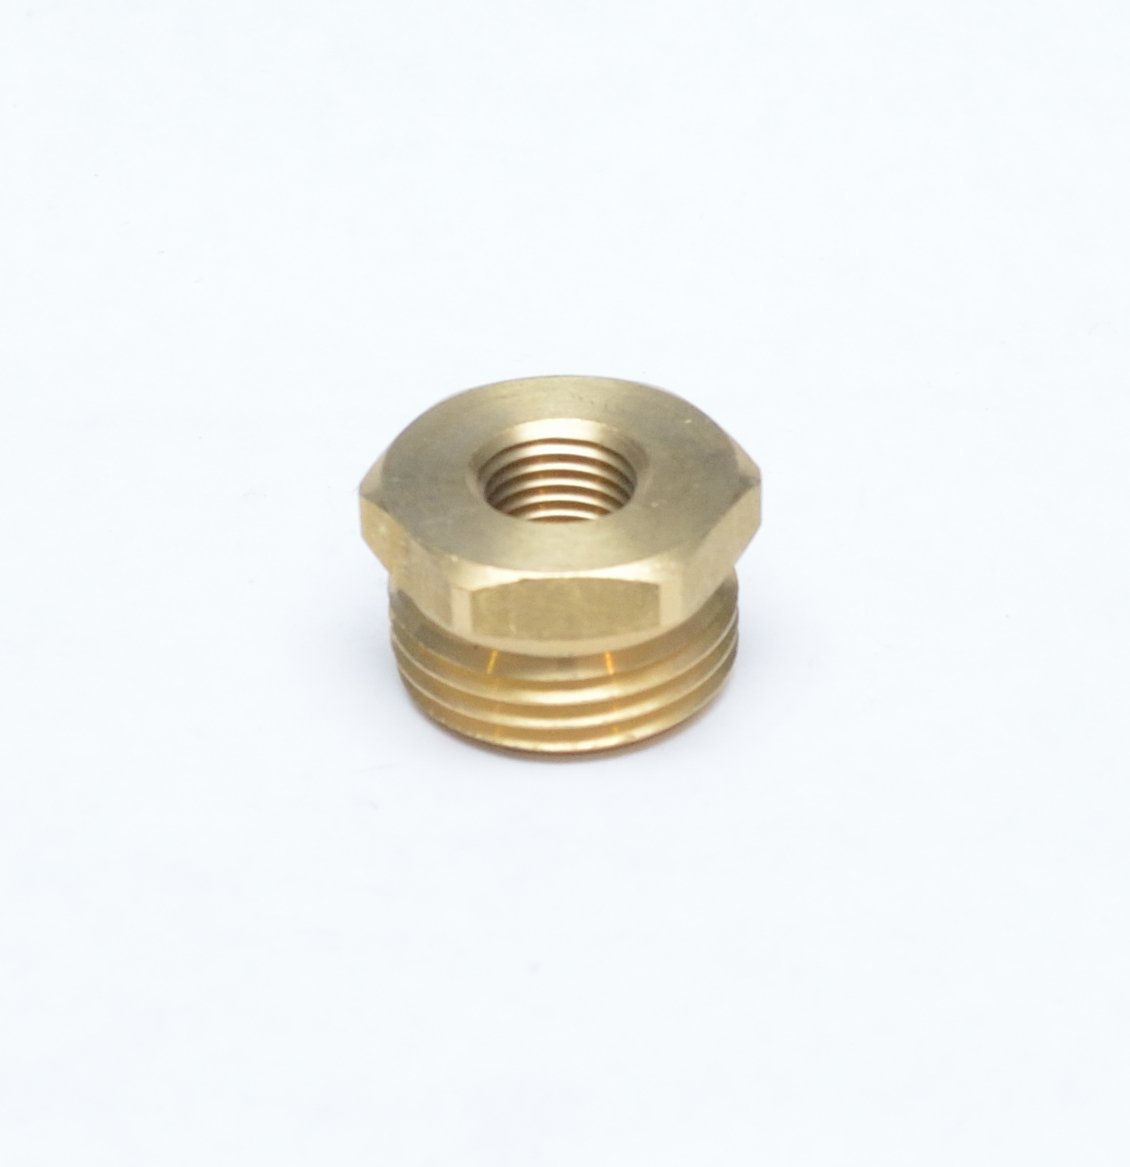 "FASPARTS 1/4"" Female NPT FPT FIP to 3/4"" Male GHT Garden Hose Thread Adapter Brass Fitting Fuel / Air / Water / Boat / Gas / Oil WOG House / Boat / Lawn / Power Wash / Irrigation"